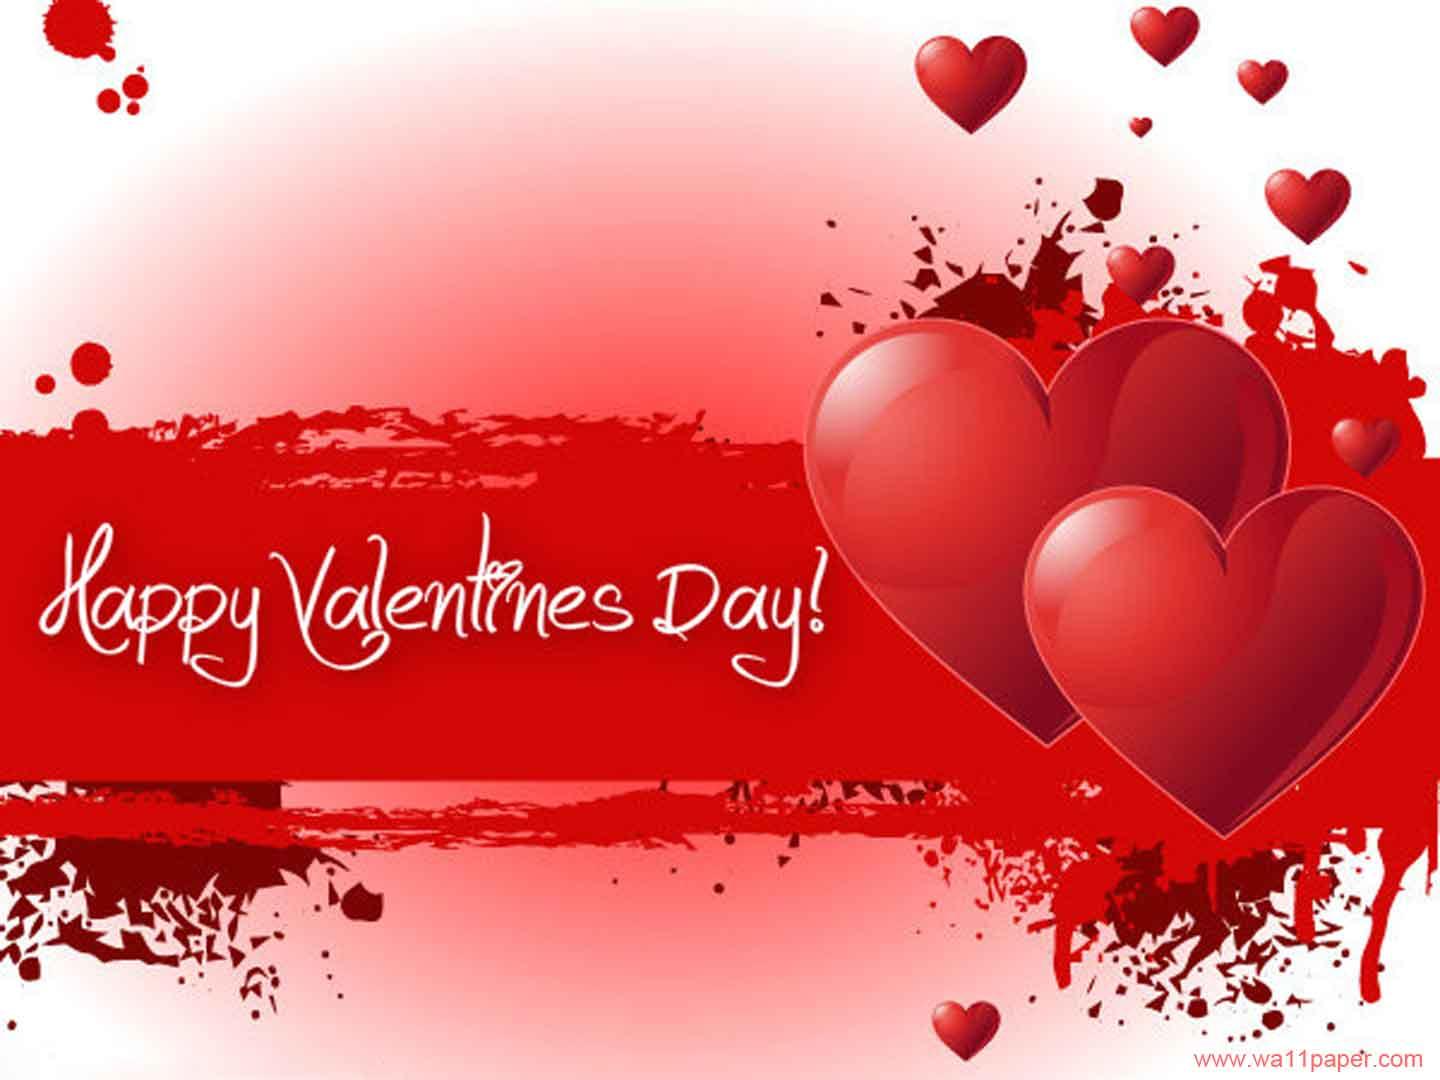 http://1.bp.blogspot.com/-GYpa-14Jny8/UOxHddoZKvI/AAAAAAAACPA/pj8XzBRmBoc/s1600/Happy-Valentines-Day-Red-Greeting-Card.jpg